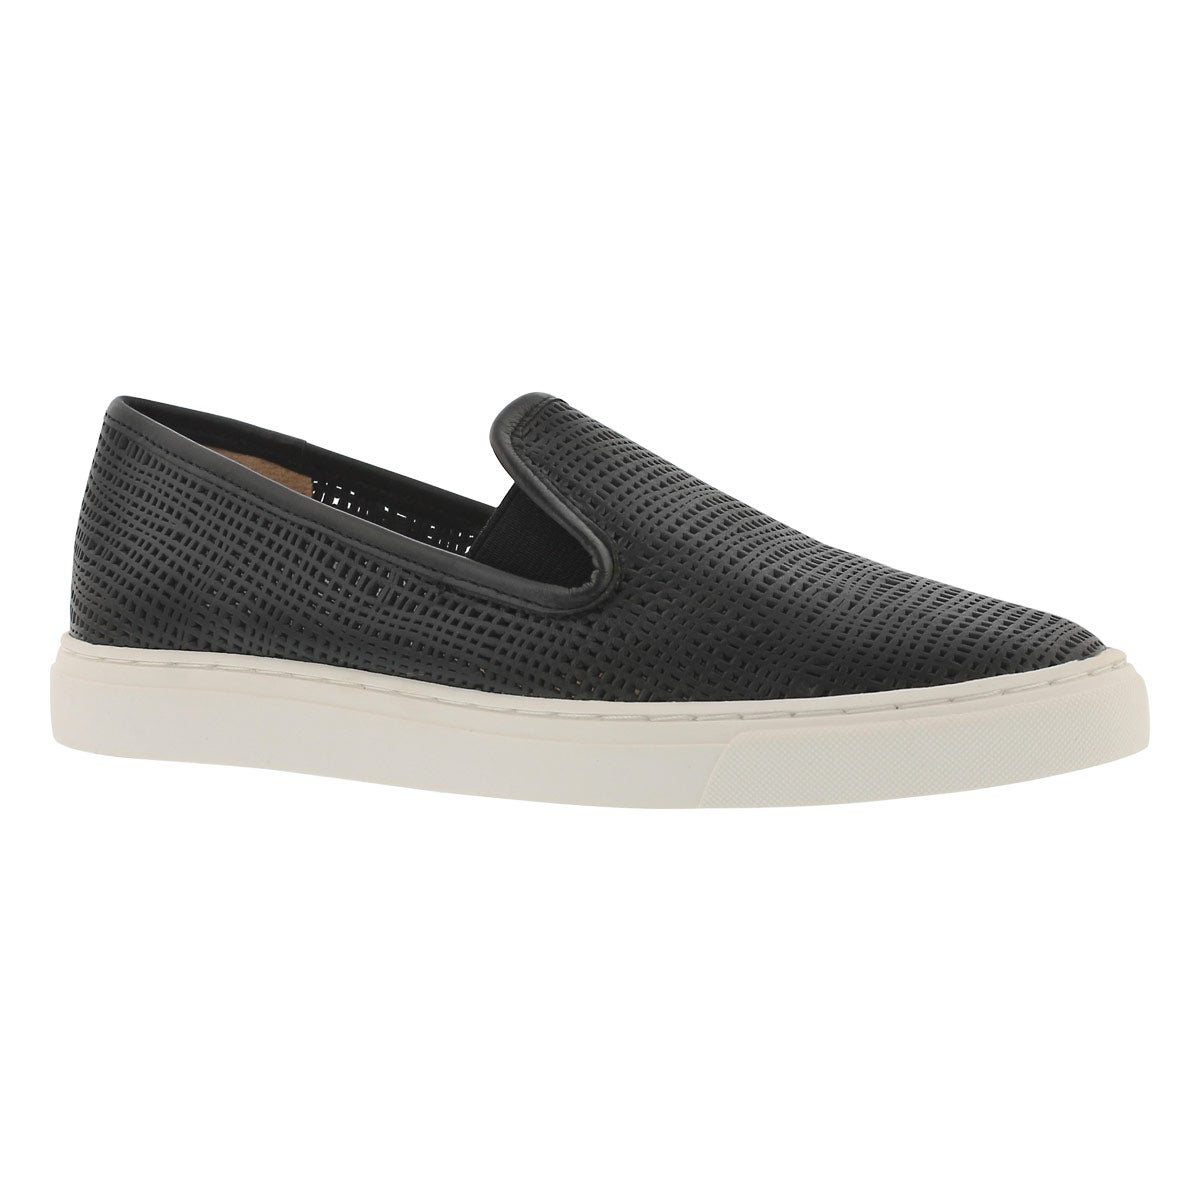 Women's BECKER black casual slip on shoes